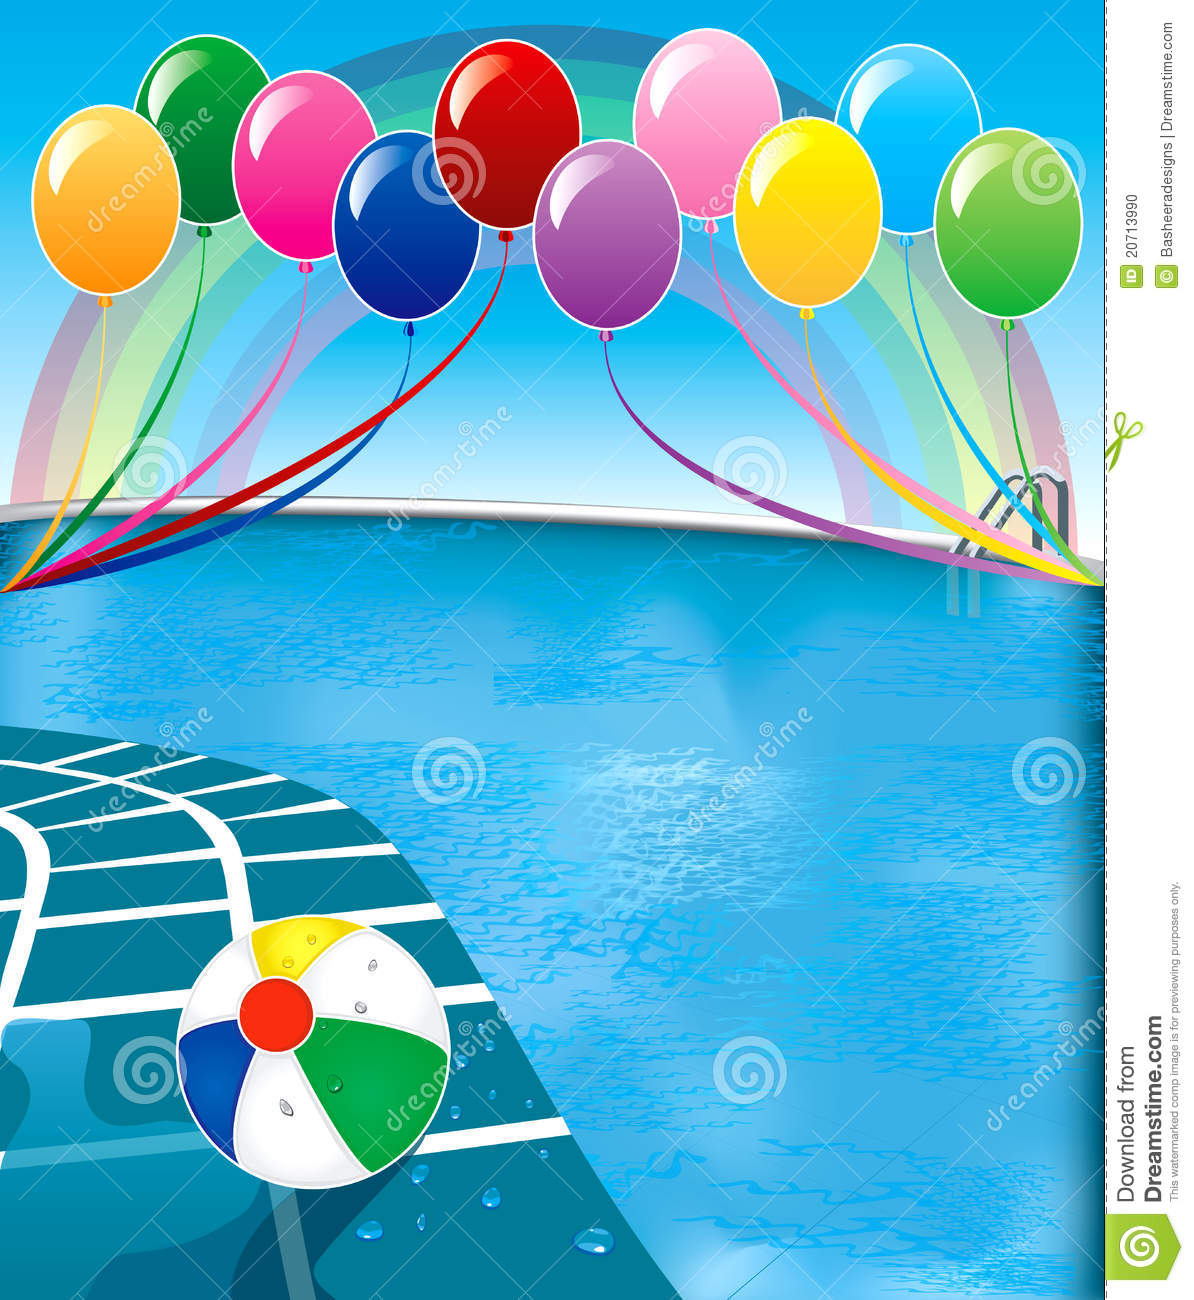 Background clipart pool party Vector pool Template com :